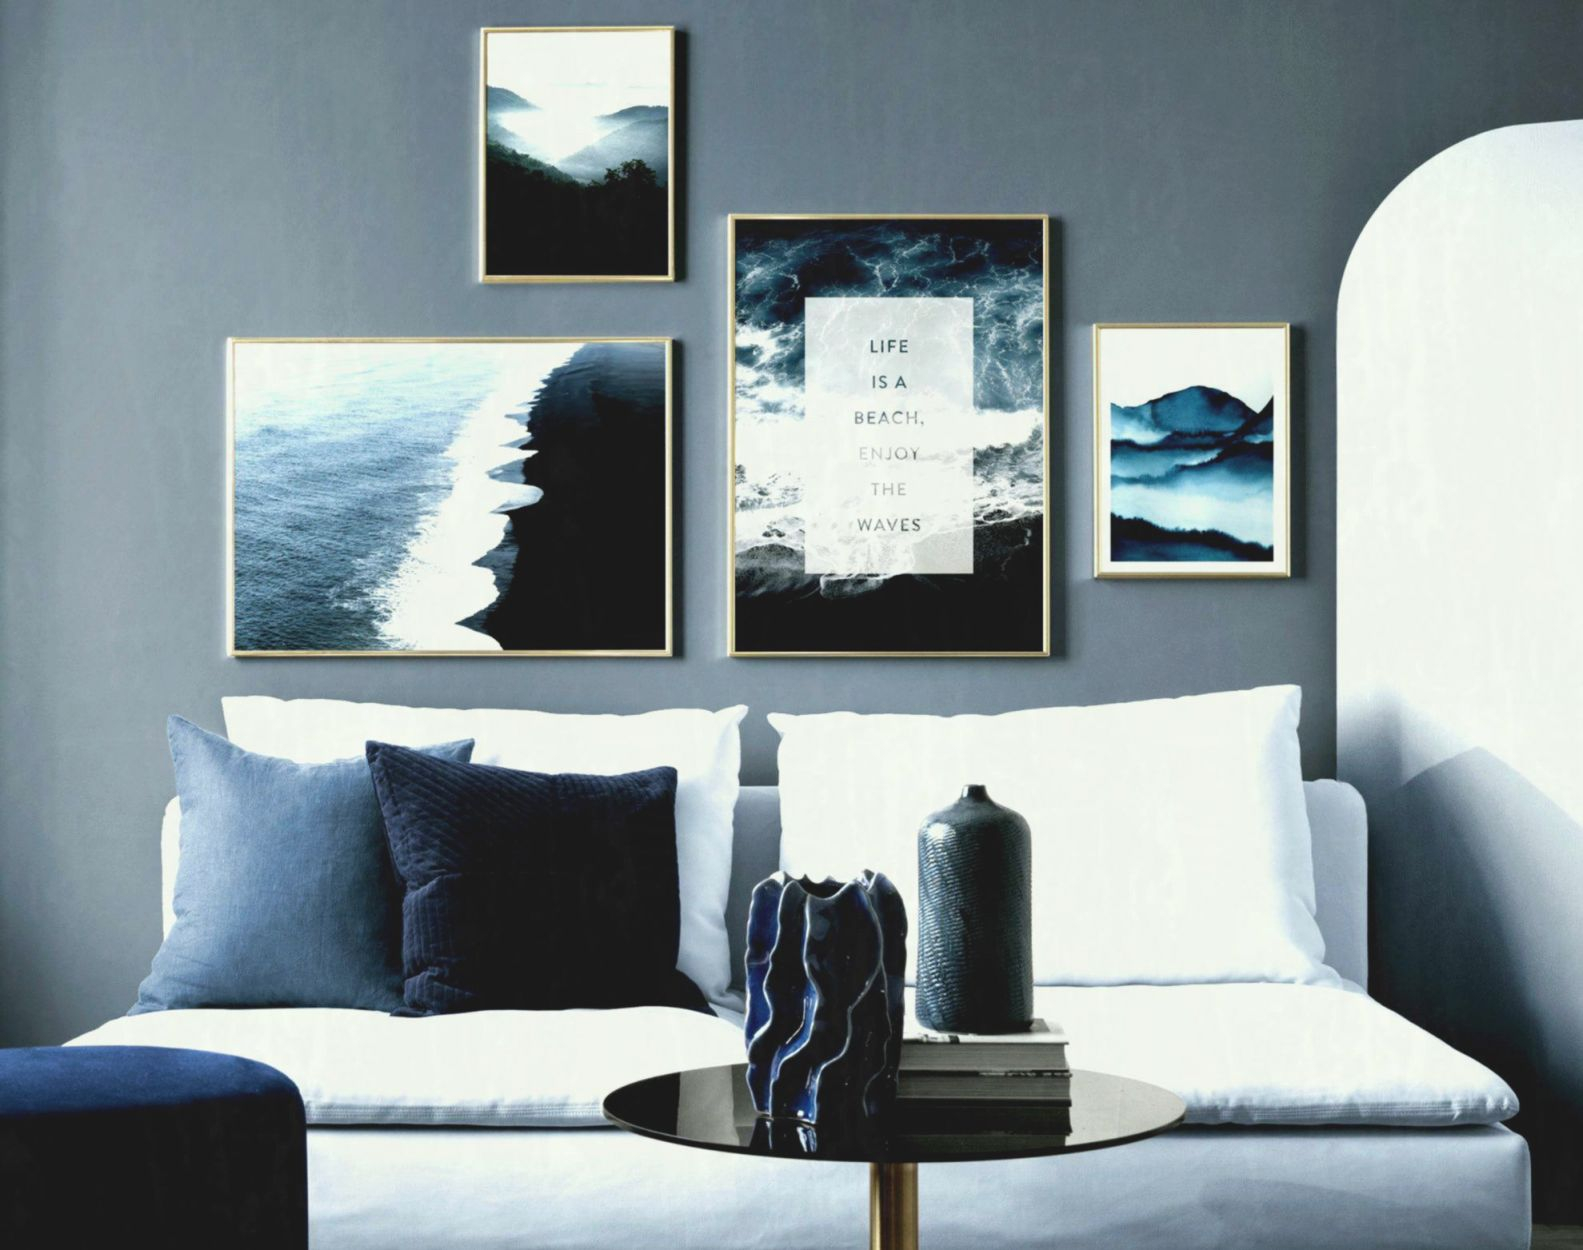 Colossal Master Bedroom Wall Decor Ideas Signs For Living intended for Beautiful Master Bedroom Wall Decor Ideas